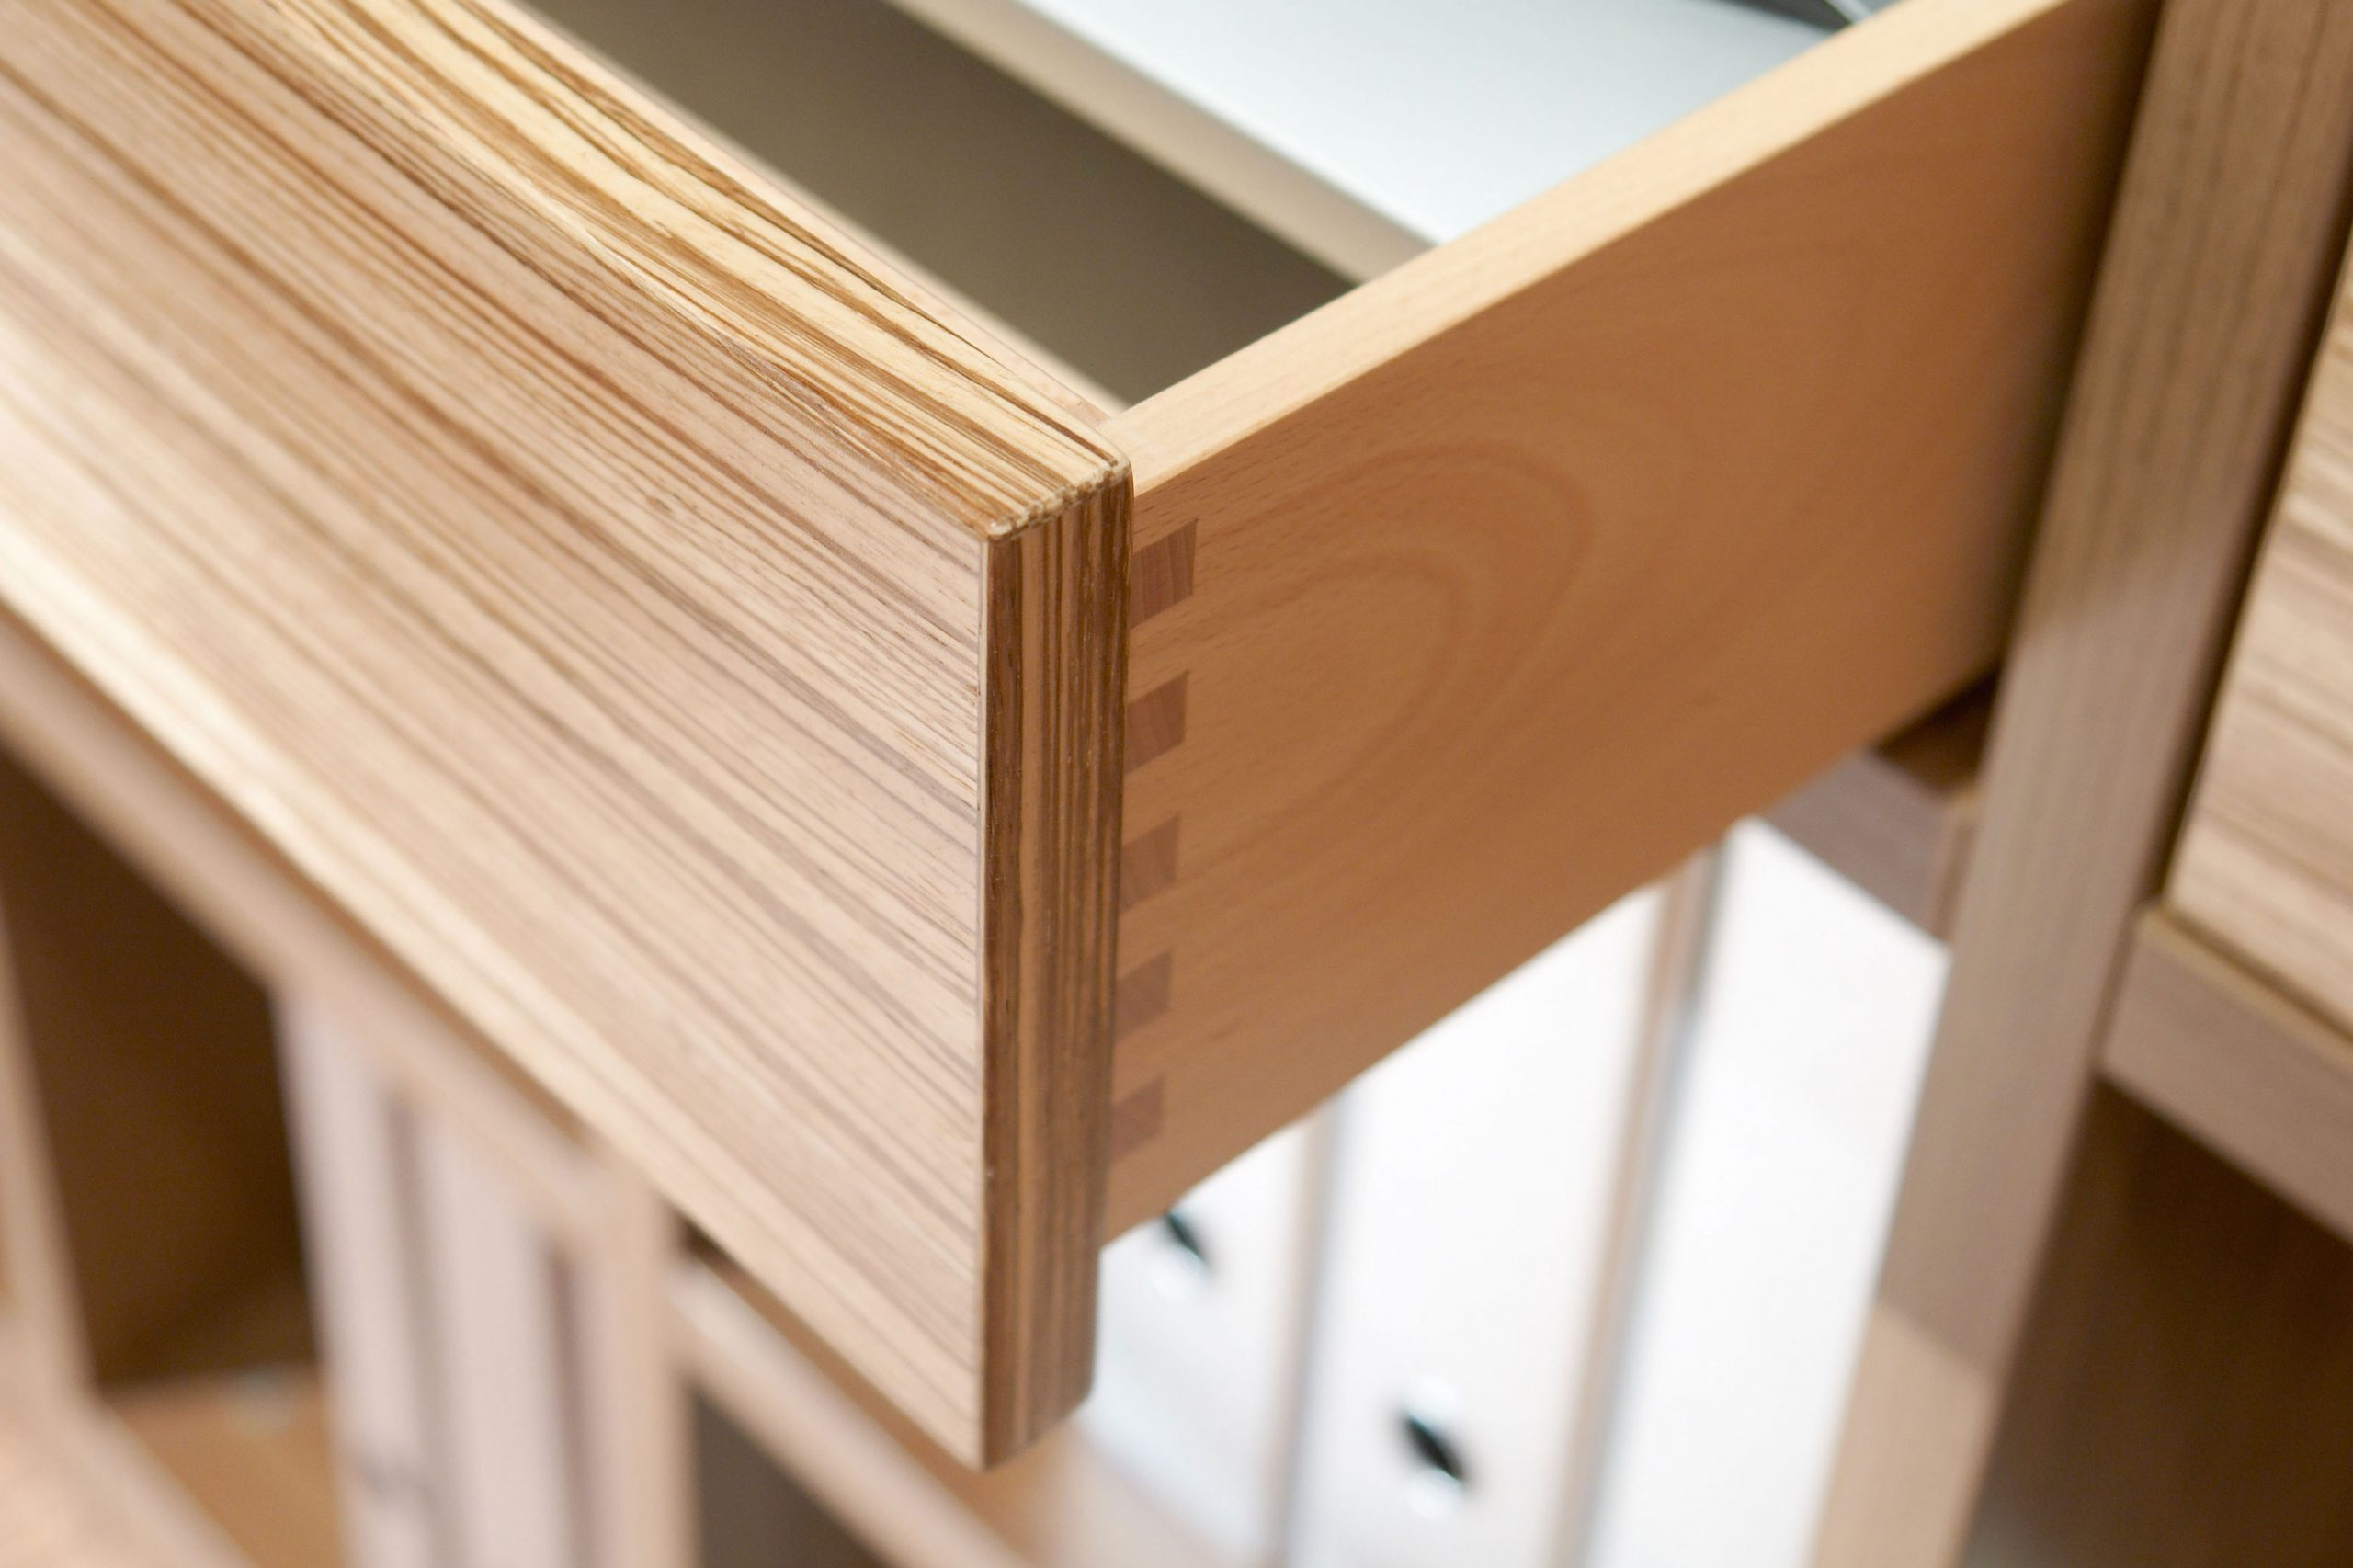 Smooth-running drawers made to individual specifications